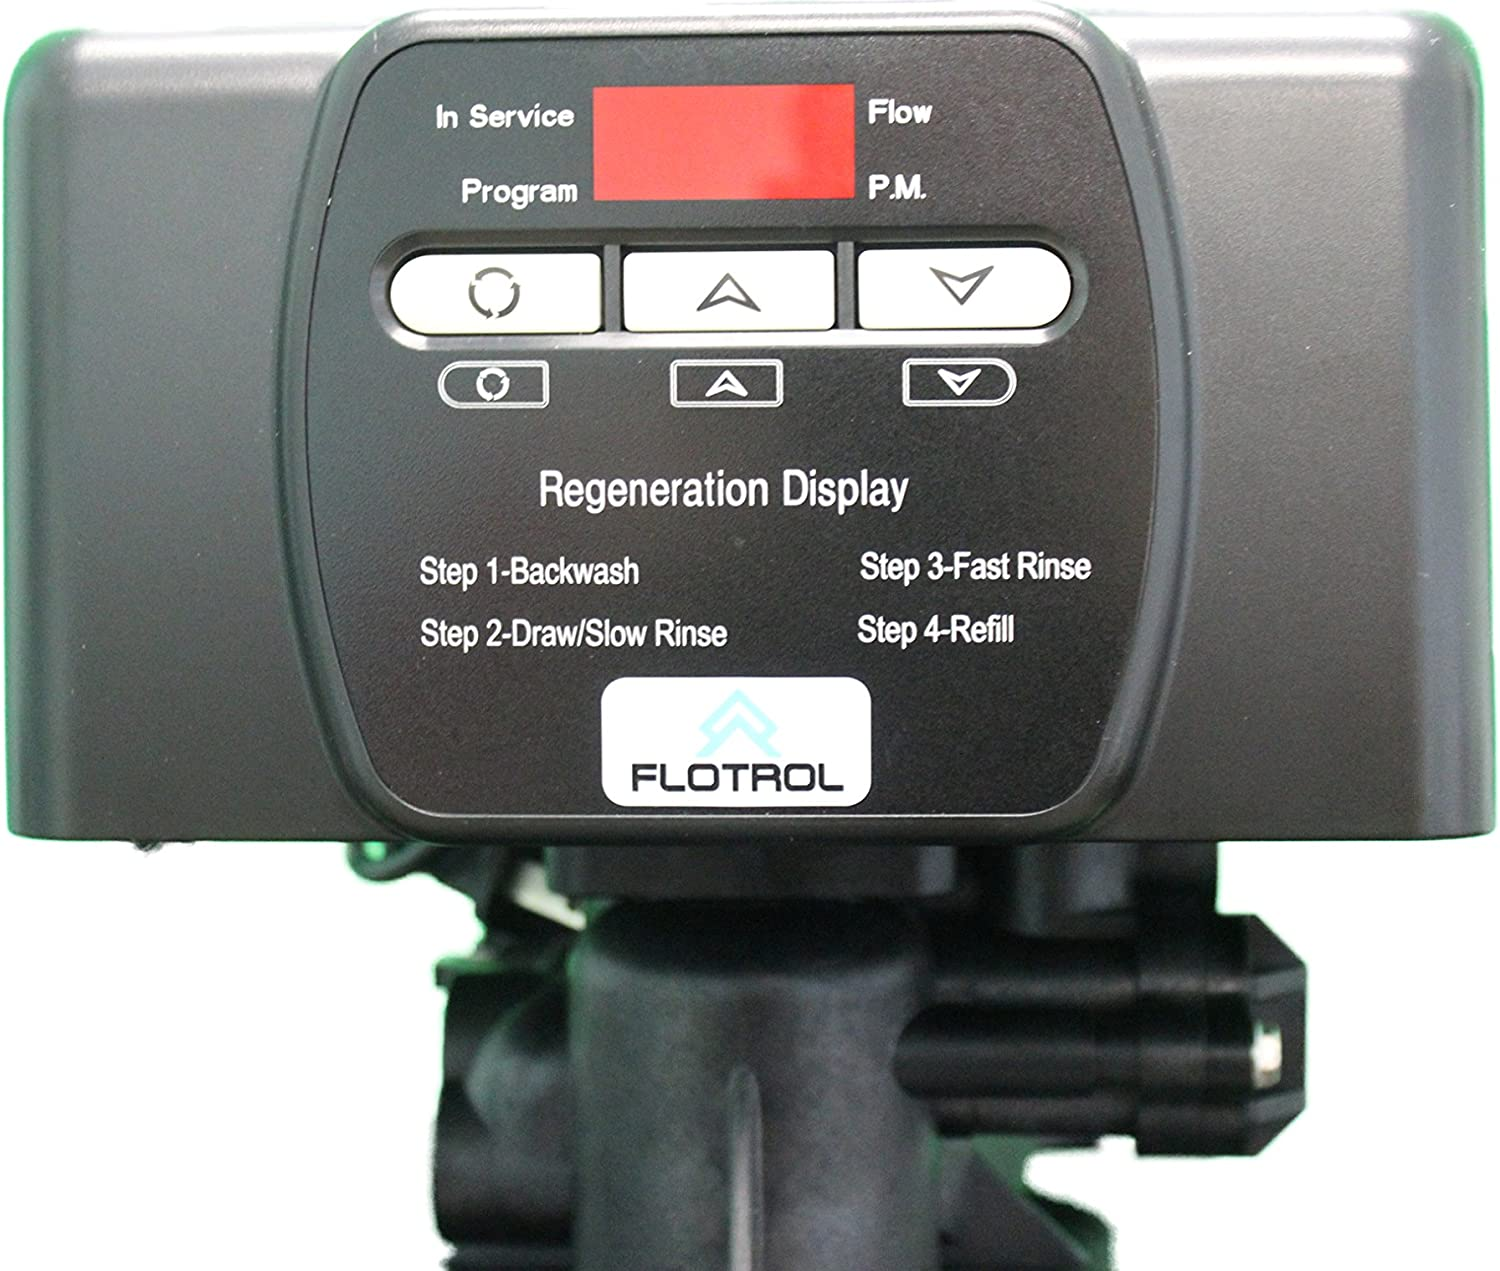 Flotrol F20 Digital Metered On Demand Water Softener Control Valve